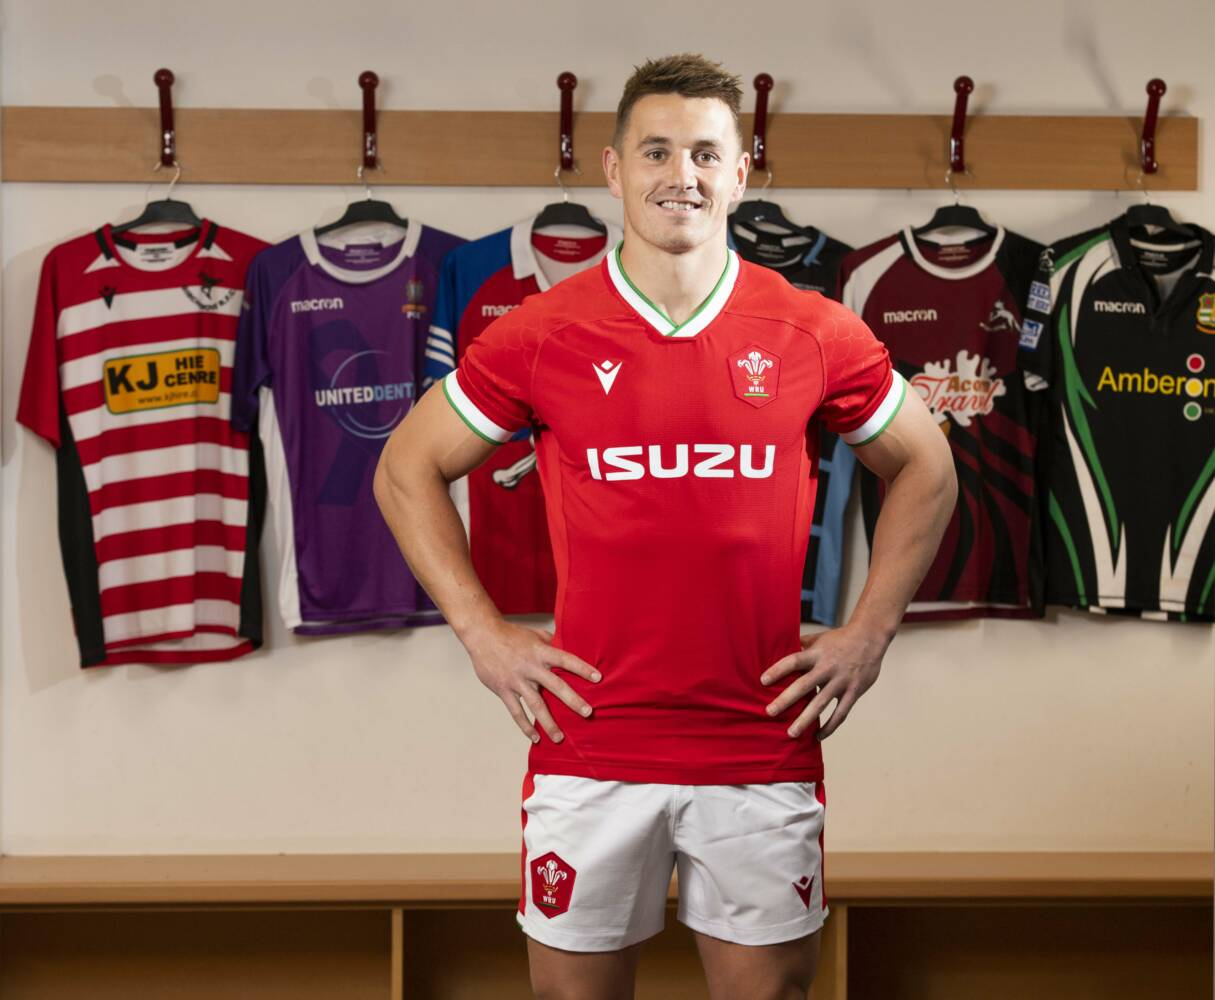 'Great buzz in Wales camp,' says Davies